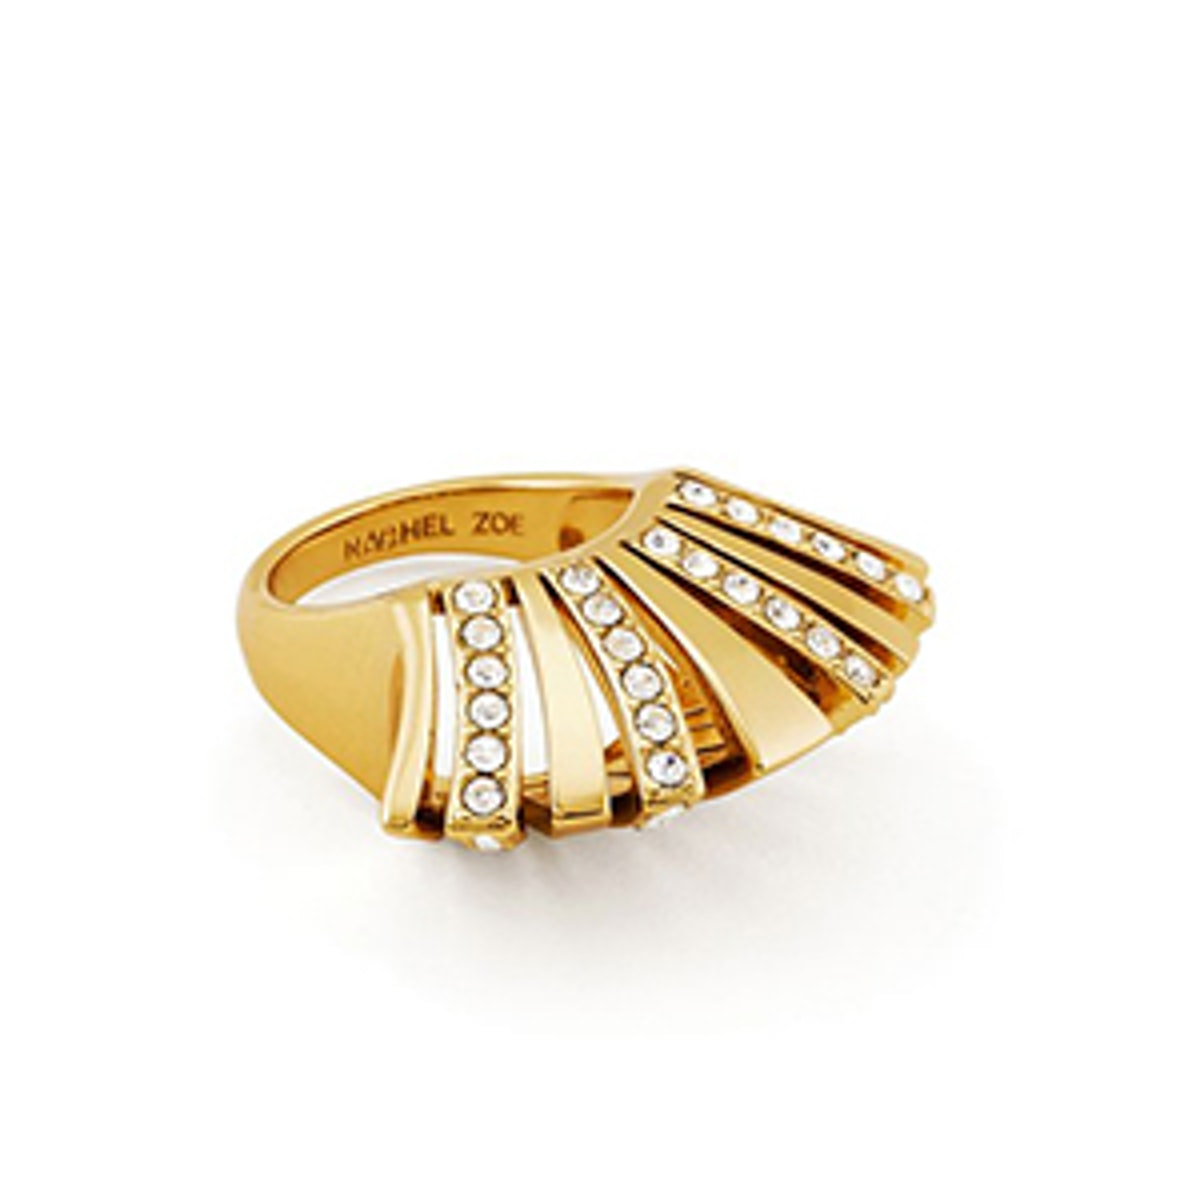 Noelle Crystal Pave Statement Ring